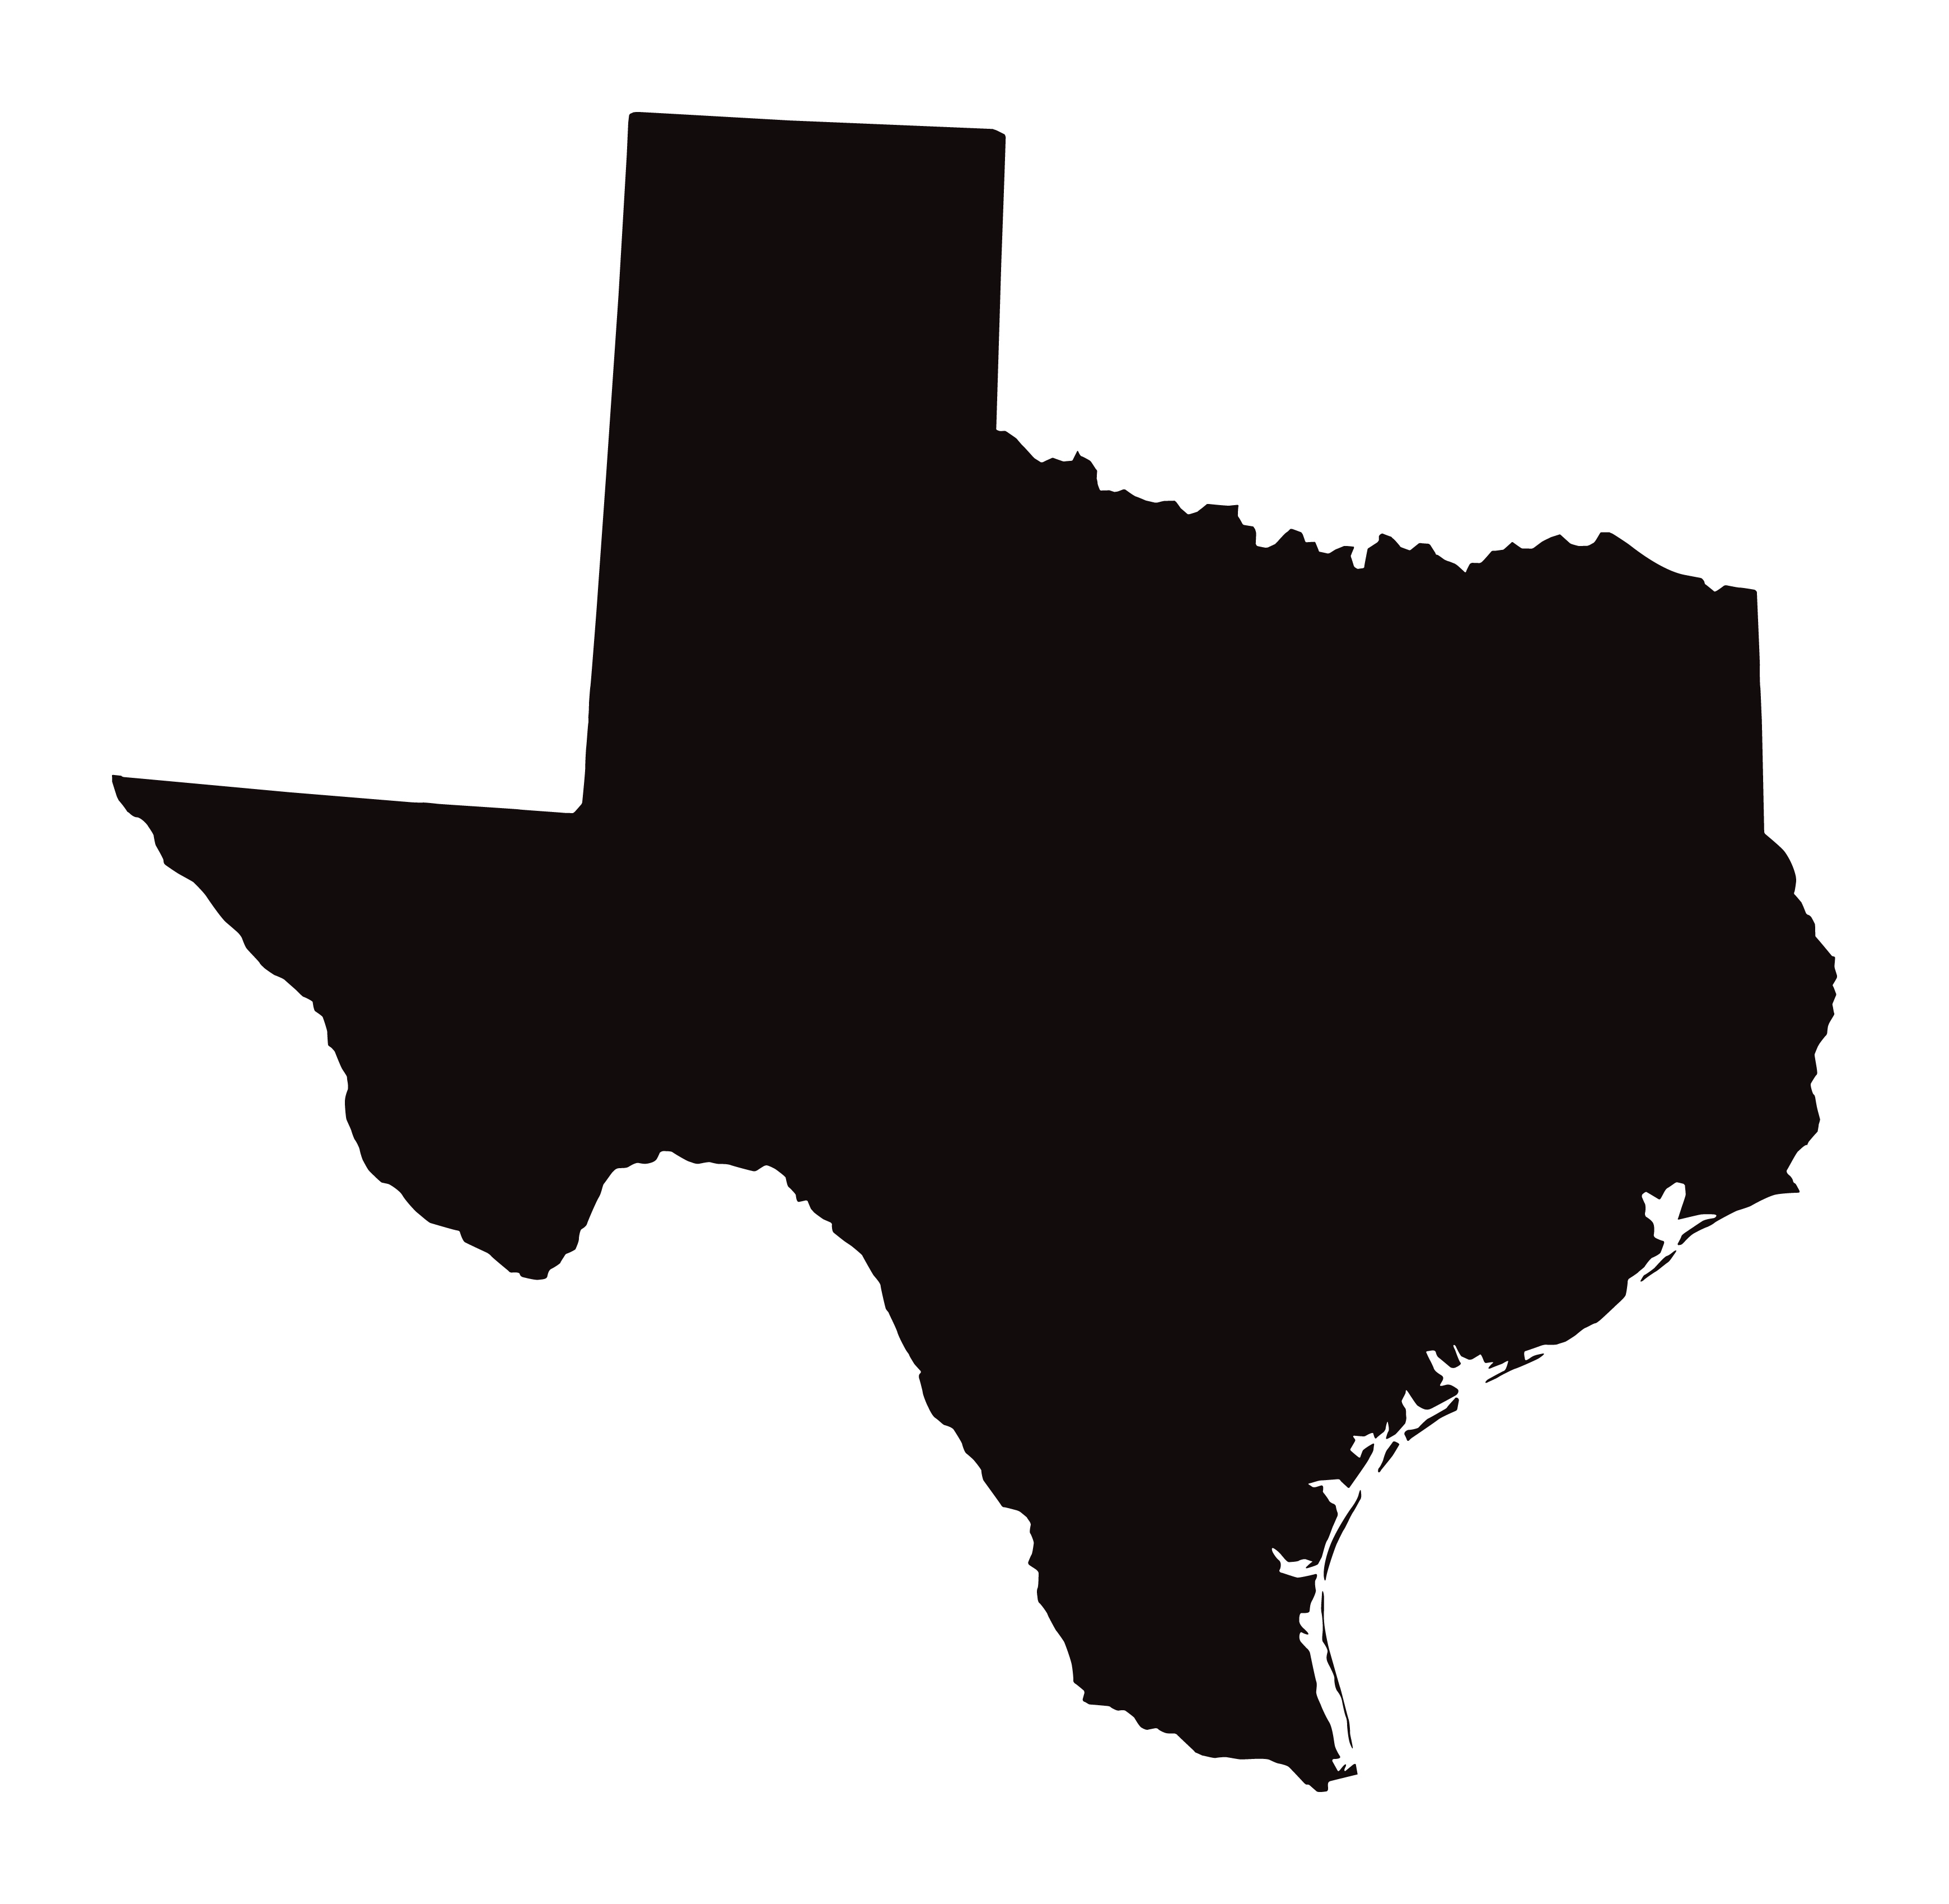 Detailed Map of Texas State